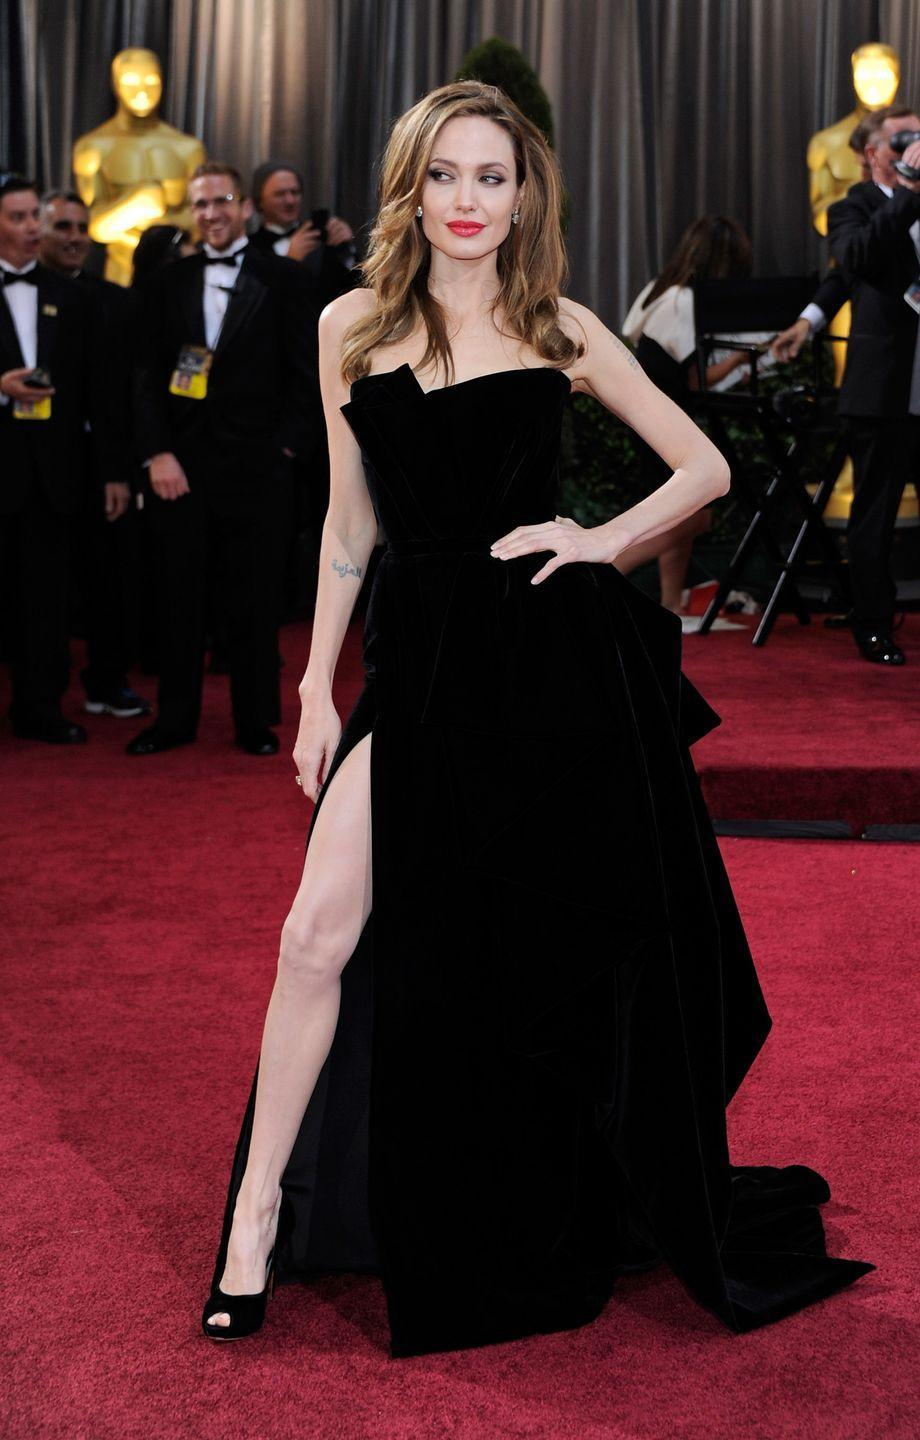 <p>One of the most famous Oscar red-carpet moments of all time - not necessarily thanks to the dress, but for the pose that accompanied it. When Angelina Jolie stepped out at the 2012 Academy Awards in this dramatic Versace gown, she showed off the thigh-high split to full effect by strategically posing with her leg peeking out from the side just so. Little did she know that her leg would send the internet into a frenzy, spawning countless memes and featuring highly on talk shows and websites the following day. </p>